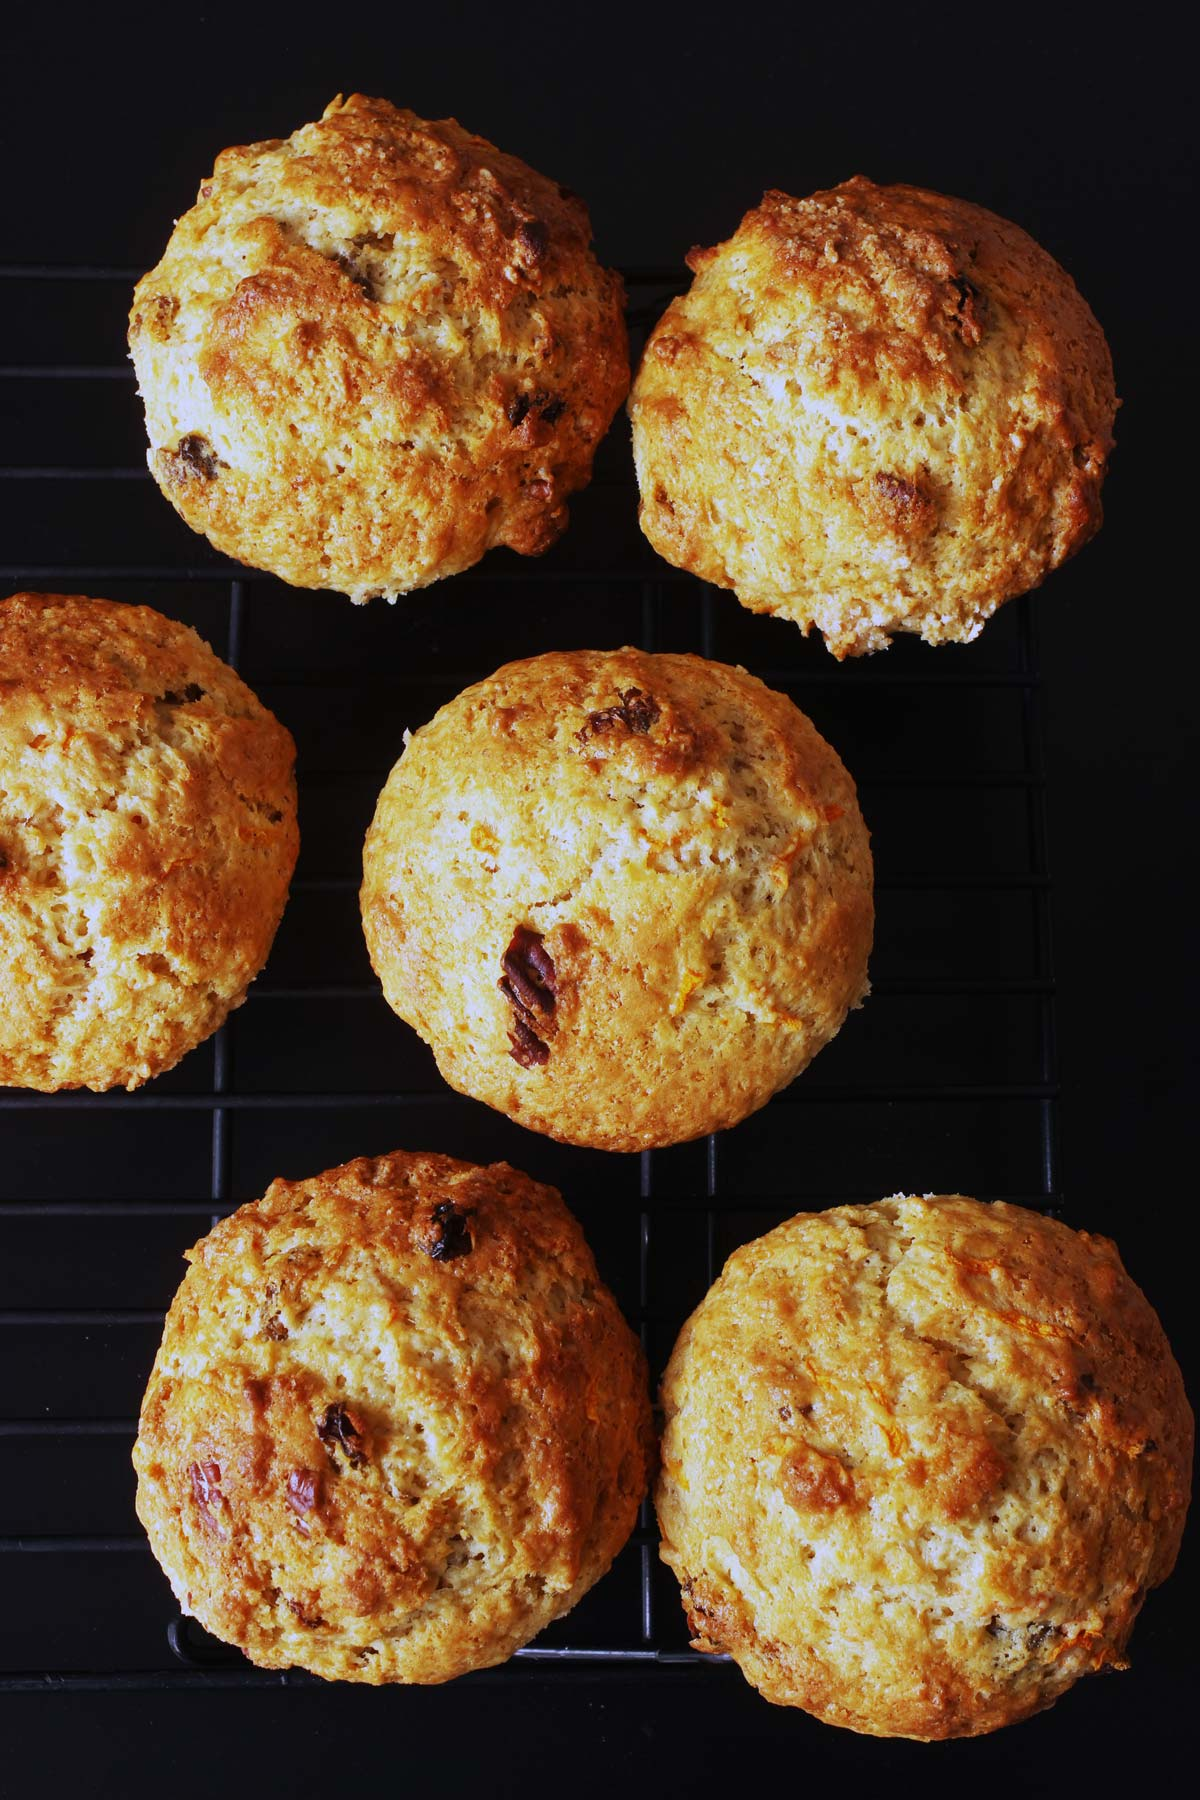 baked muffins on rack